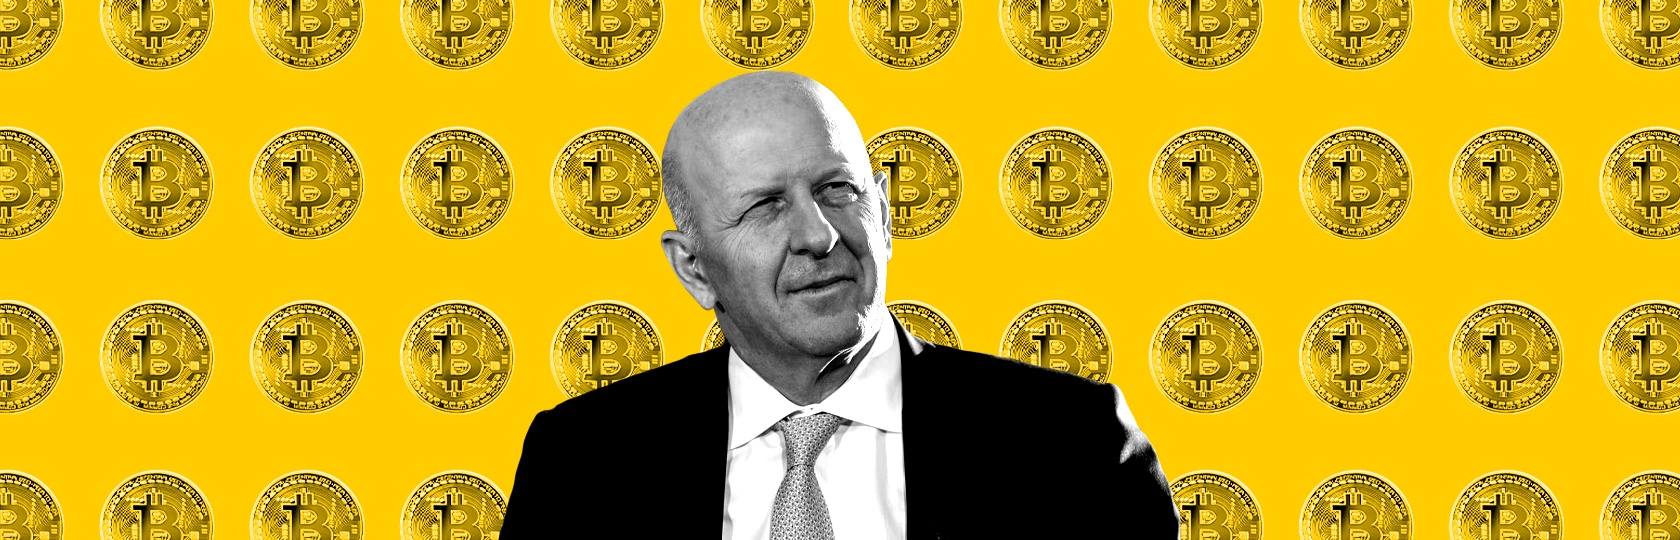 Bitcoin S Rise Is Luring Everyone From Goldman Sachs To Chipotle But A Crash Might Be Coming The Business Of Business